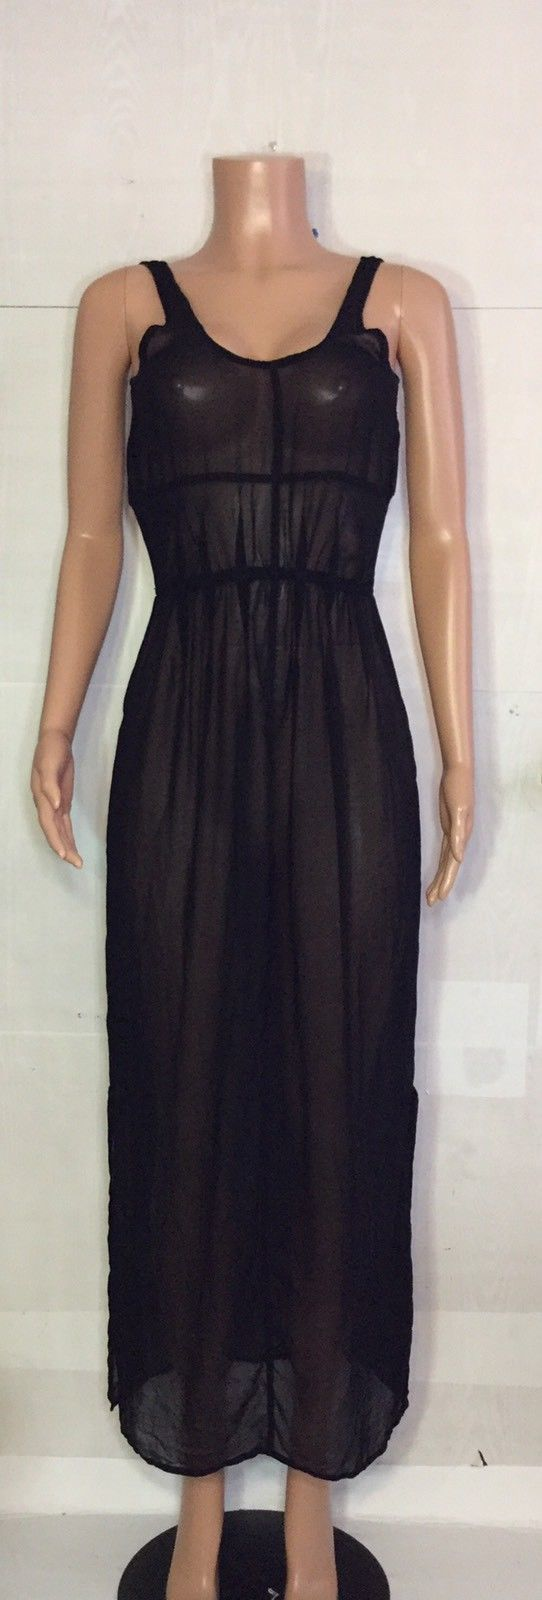 Awesome great mono b black sheer maxi dress small long cover up